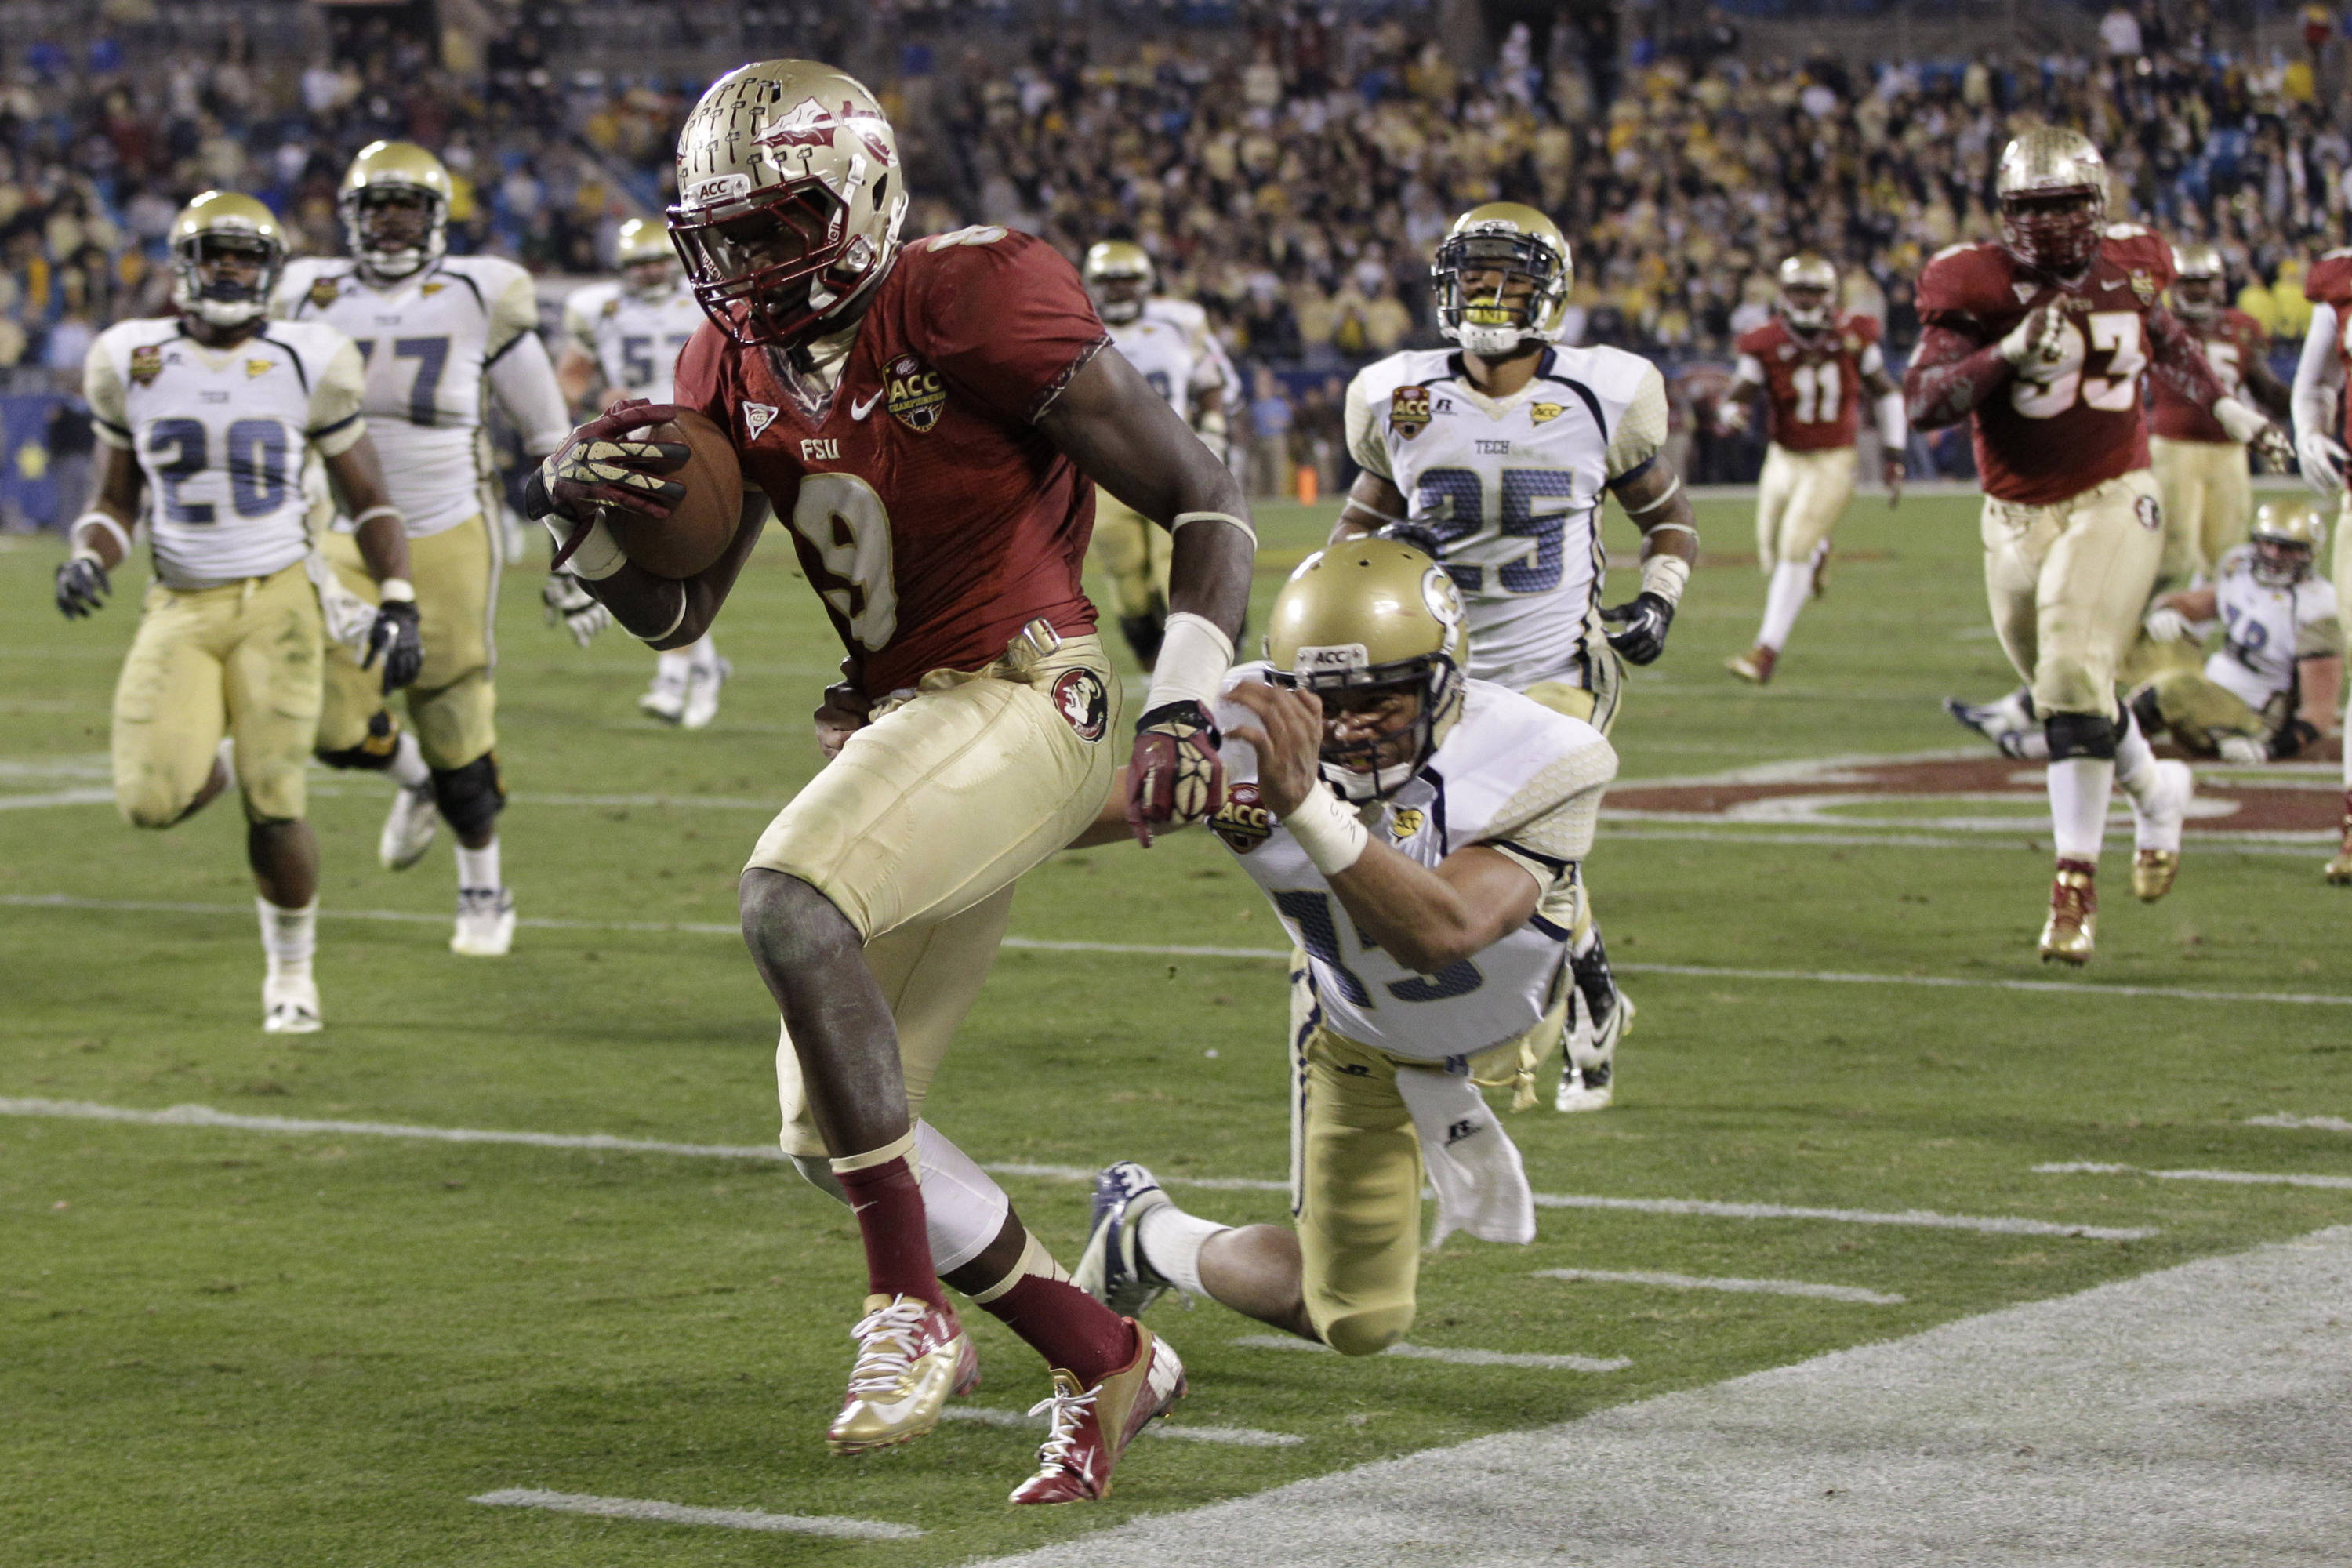 Florida State's Karlos Williams (9) returns an interception as Georgia Tech quarterback Tevin Washington (13) chases in vain during the second half. (AP Photo/Chuck Burton)